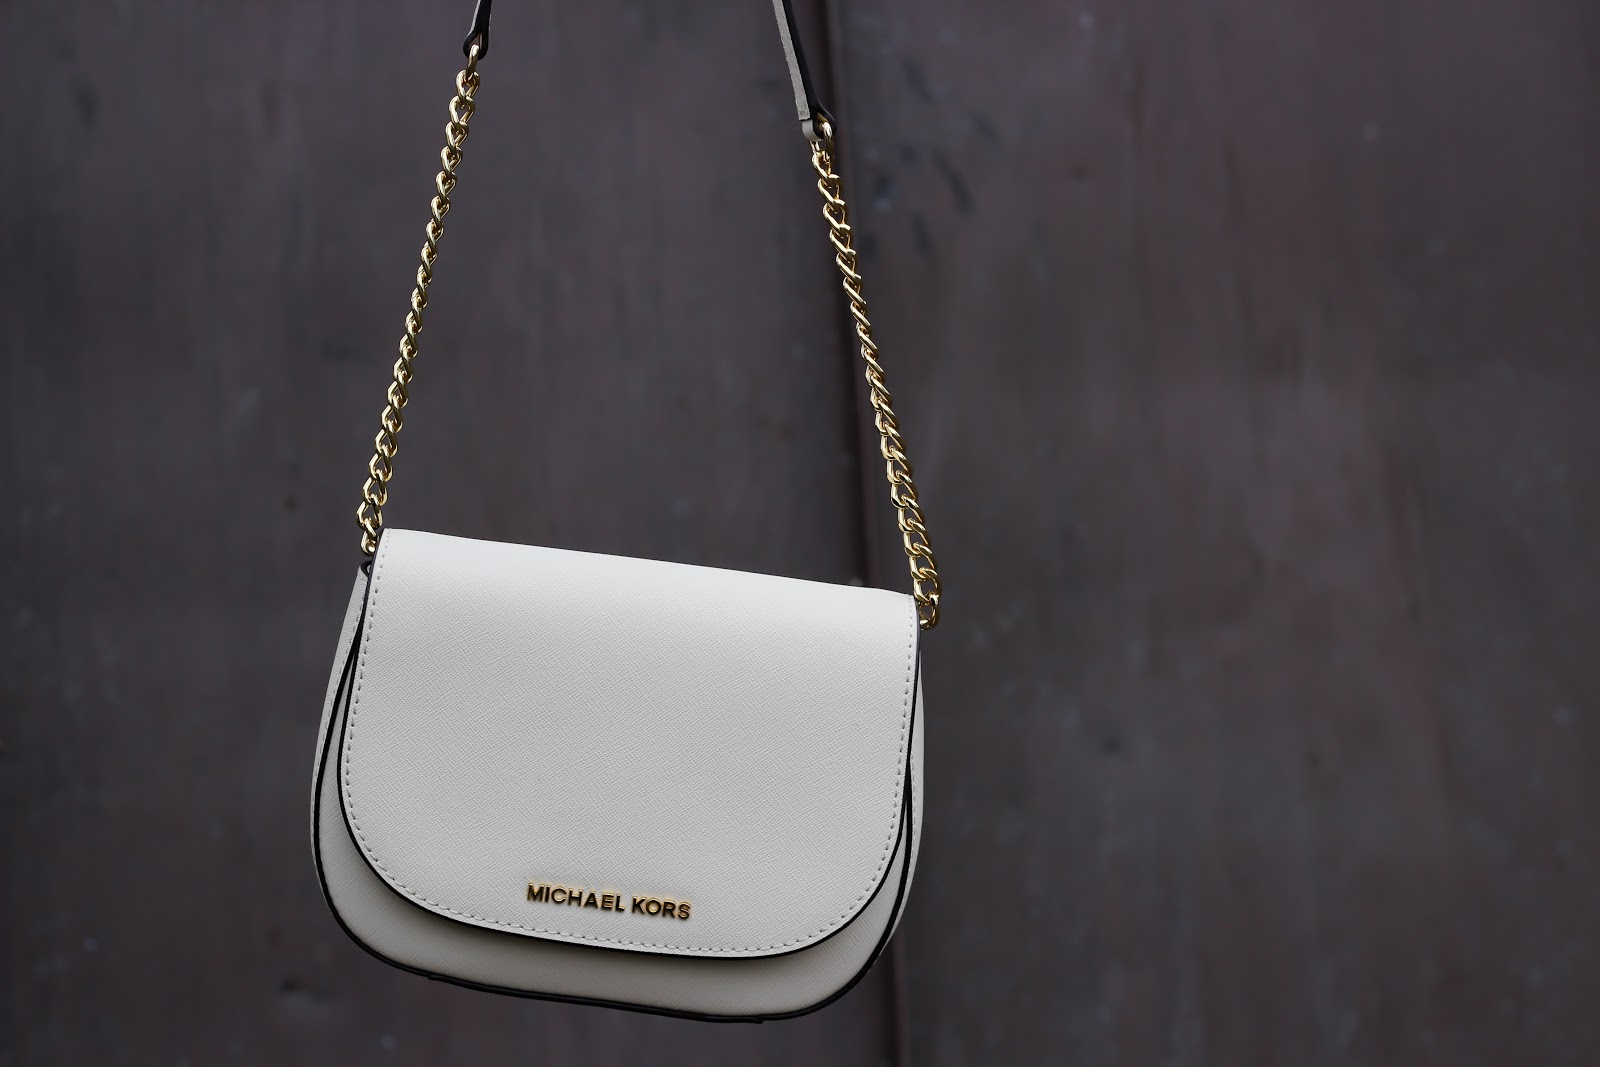 Michael Kors cross-body Bedford bag